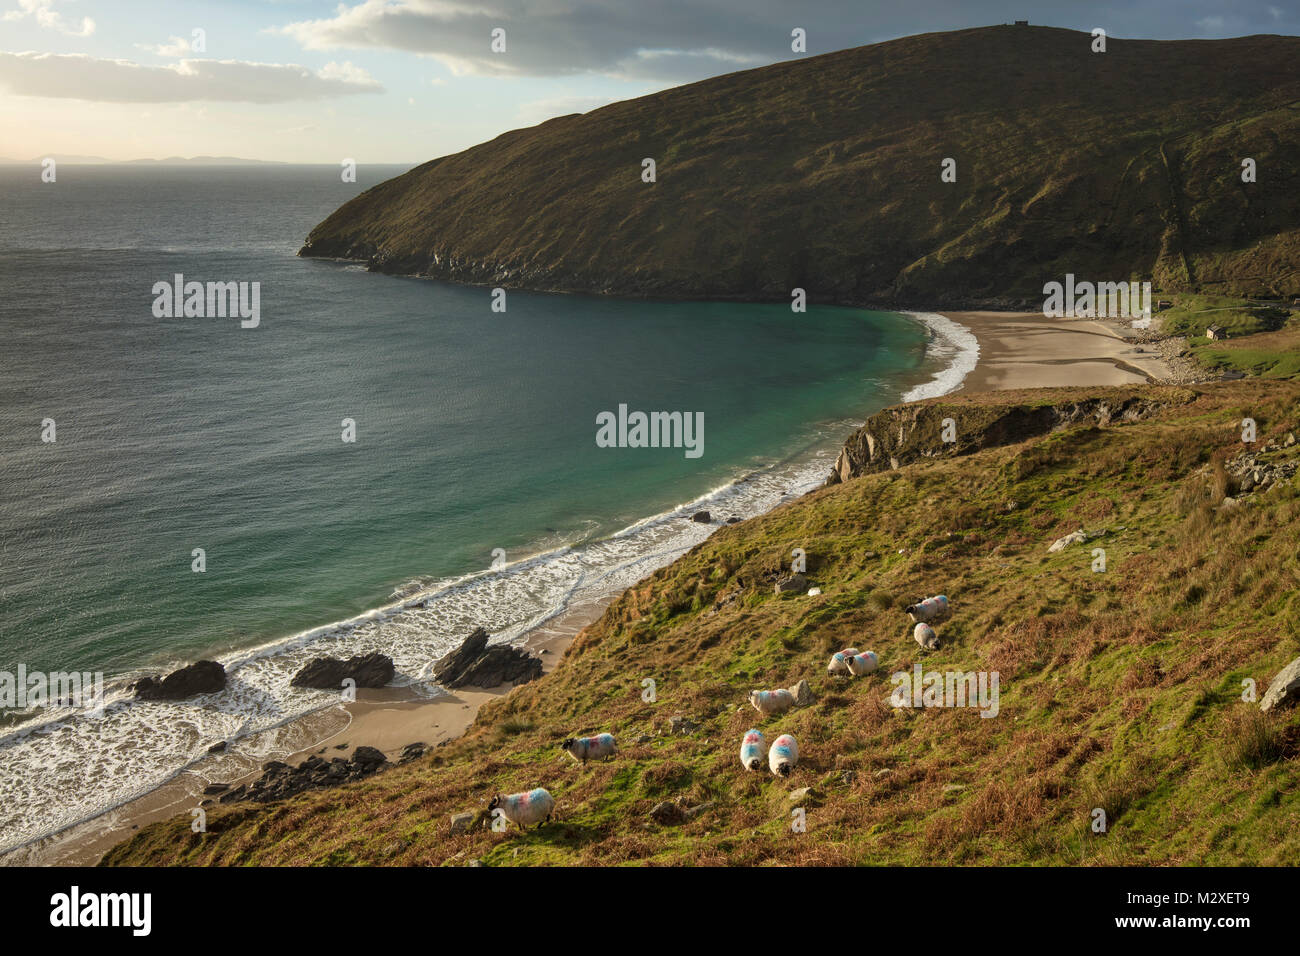 Flock of sheep grazing above Keem Bay, Achill Island, County Mayo, Ireland. - Stock Image